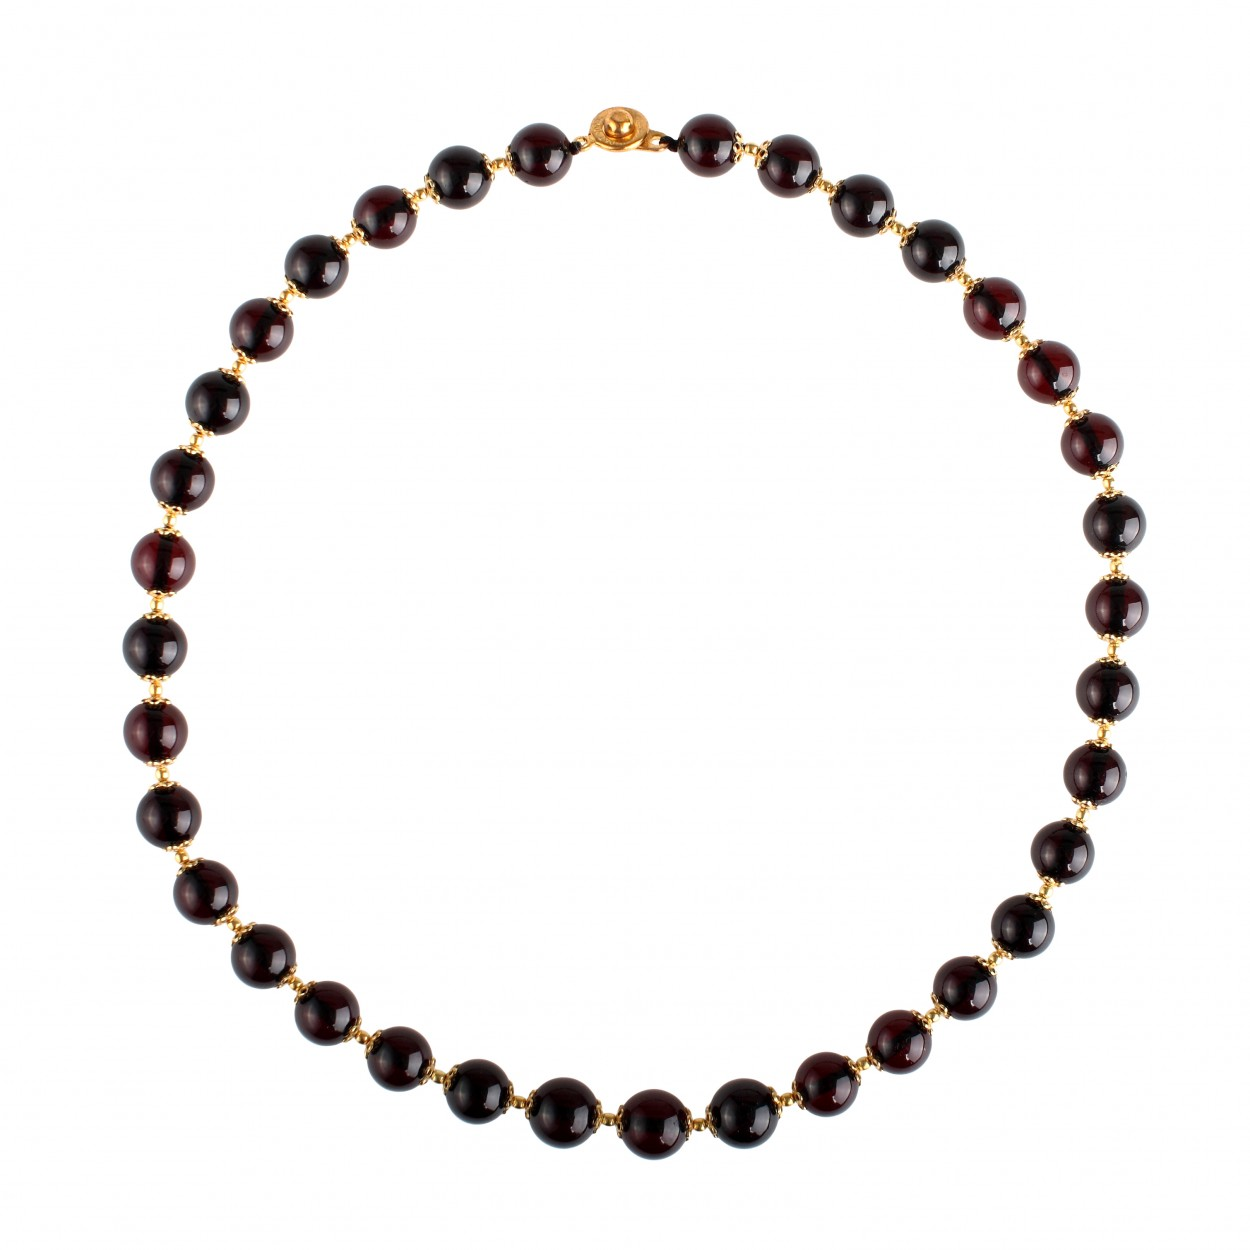 Mermaid Amber Necklace